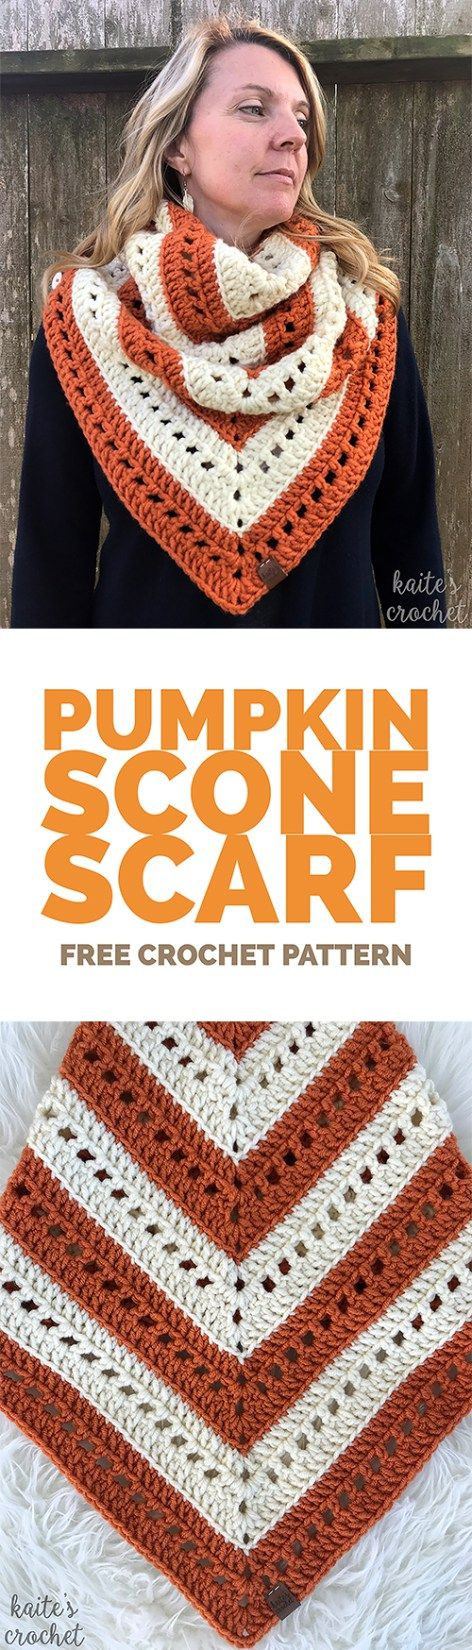 The Pumpkin Scone Scarf is the perfect addition to your pumpkin spice latte! Click for the free crochet pattern from Kaite's Crochet, A Modern Crochet Blog.